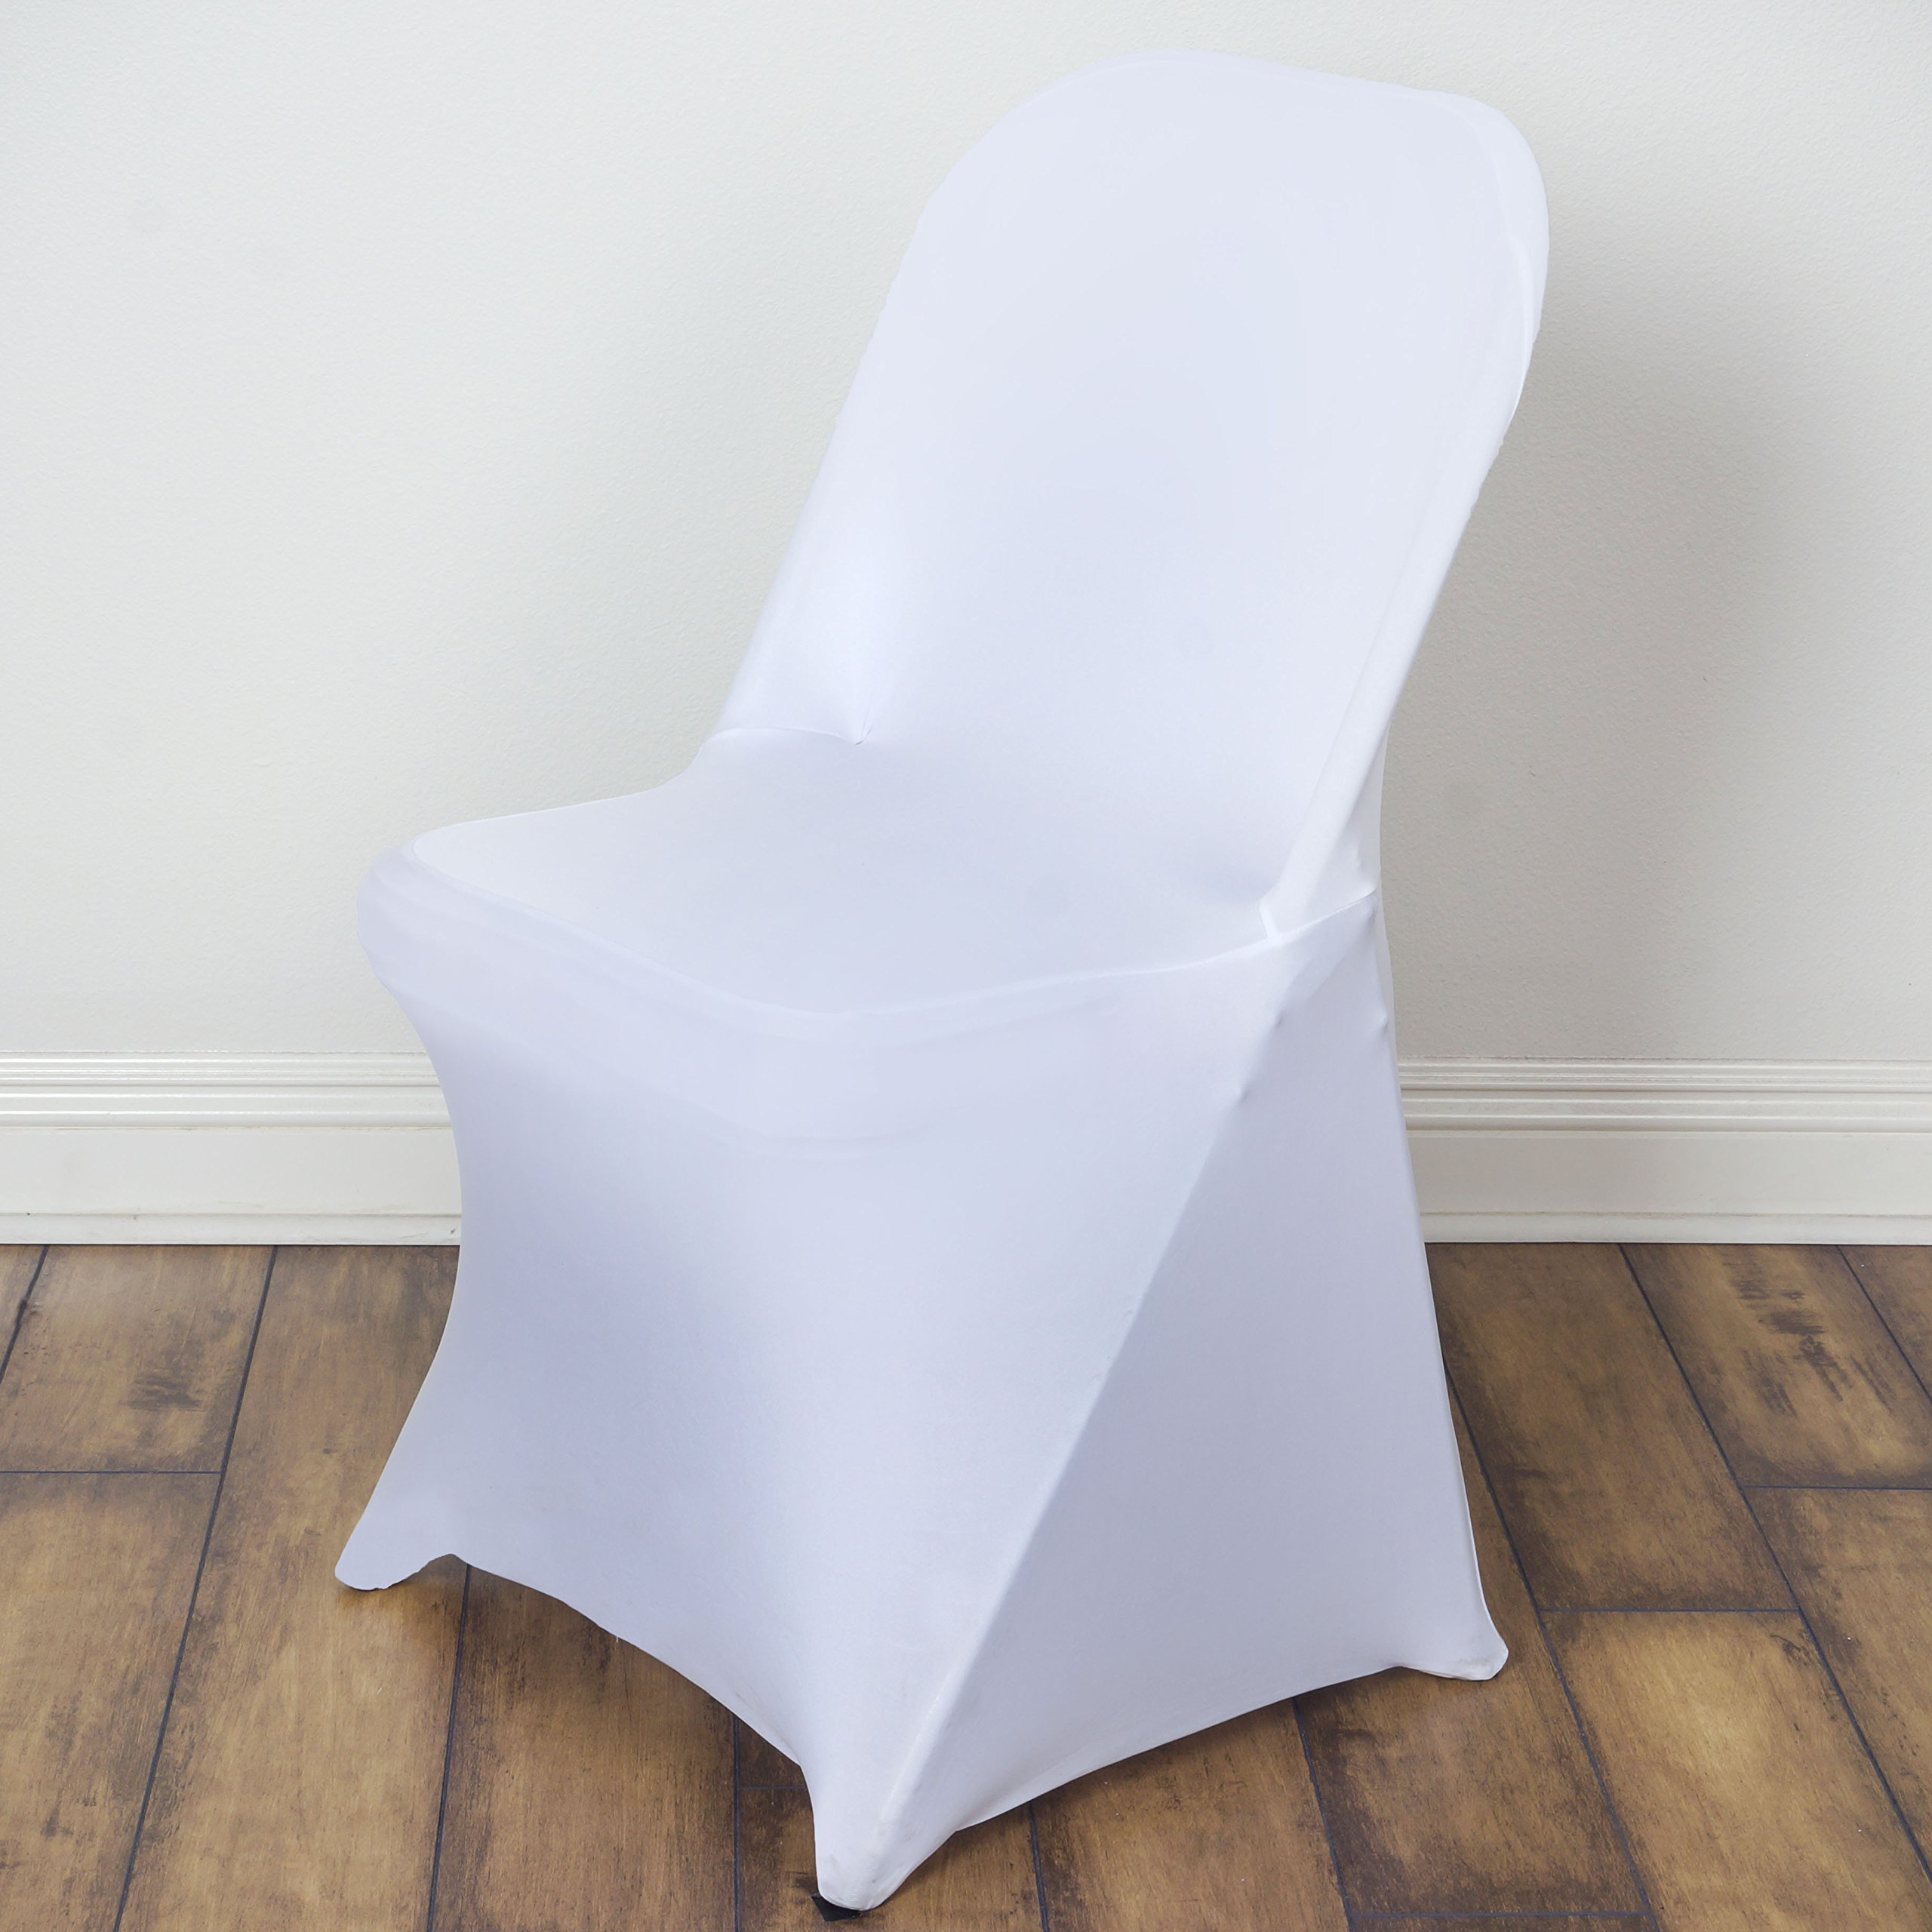 BalsaCircle 10 pcs White Spandex Strechable Folding Chair Covers Slipcovers for Wedding Party Reception Decorations